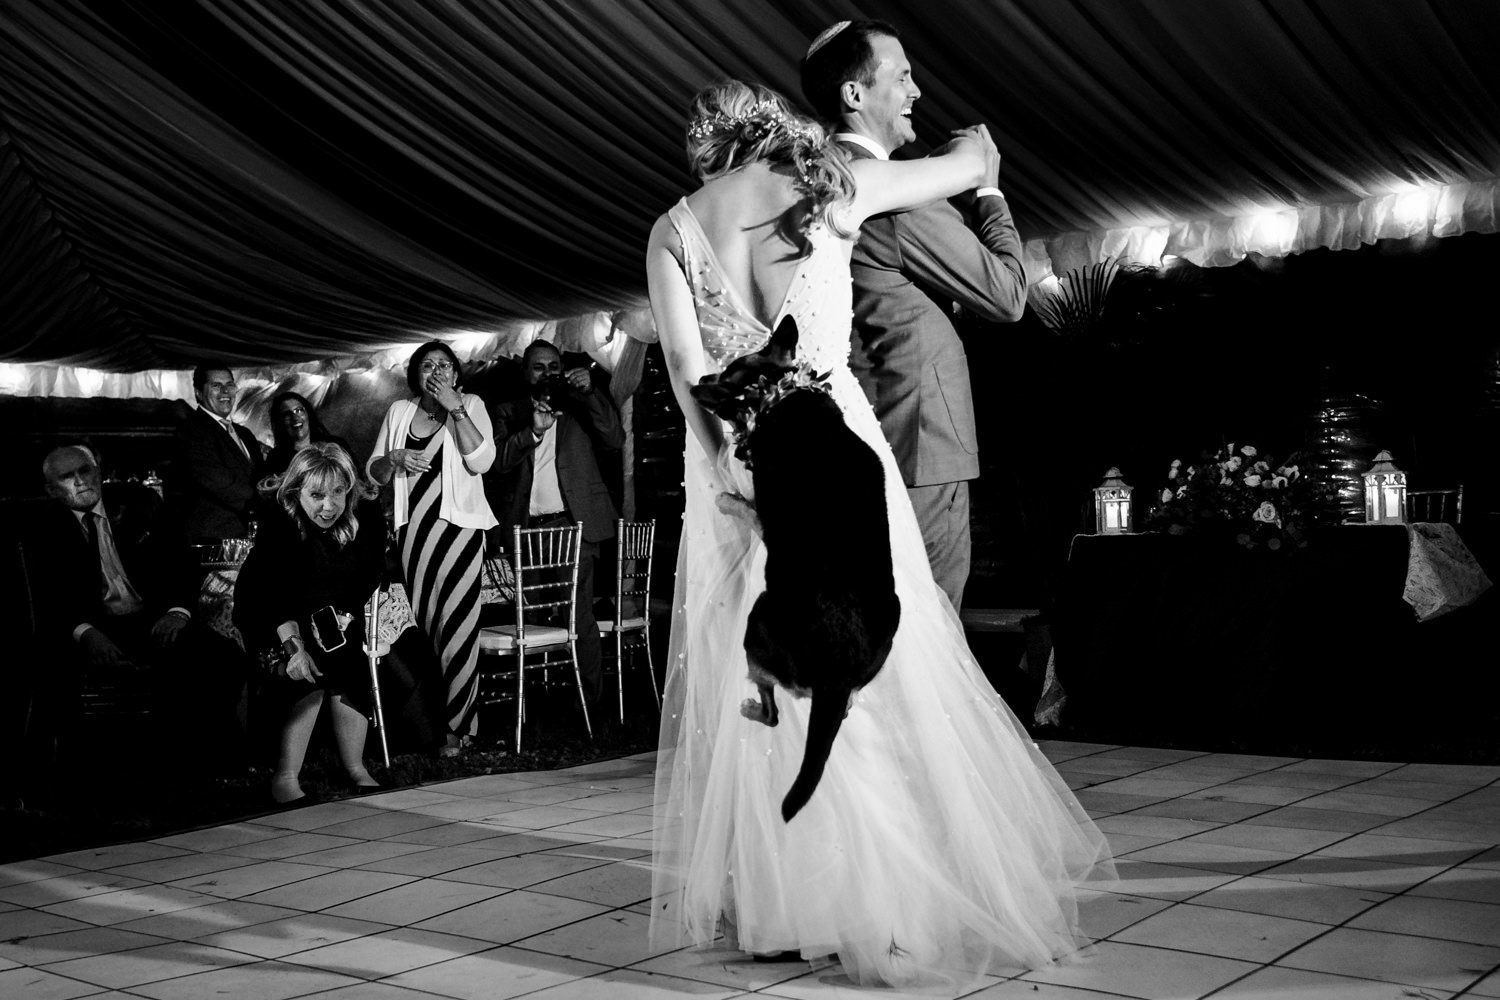 dog jumping and biting brides dress during the first dance